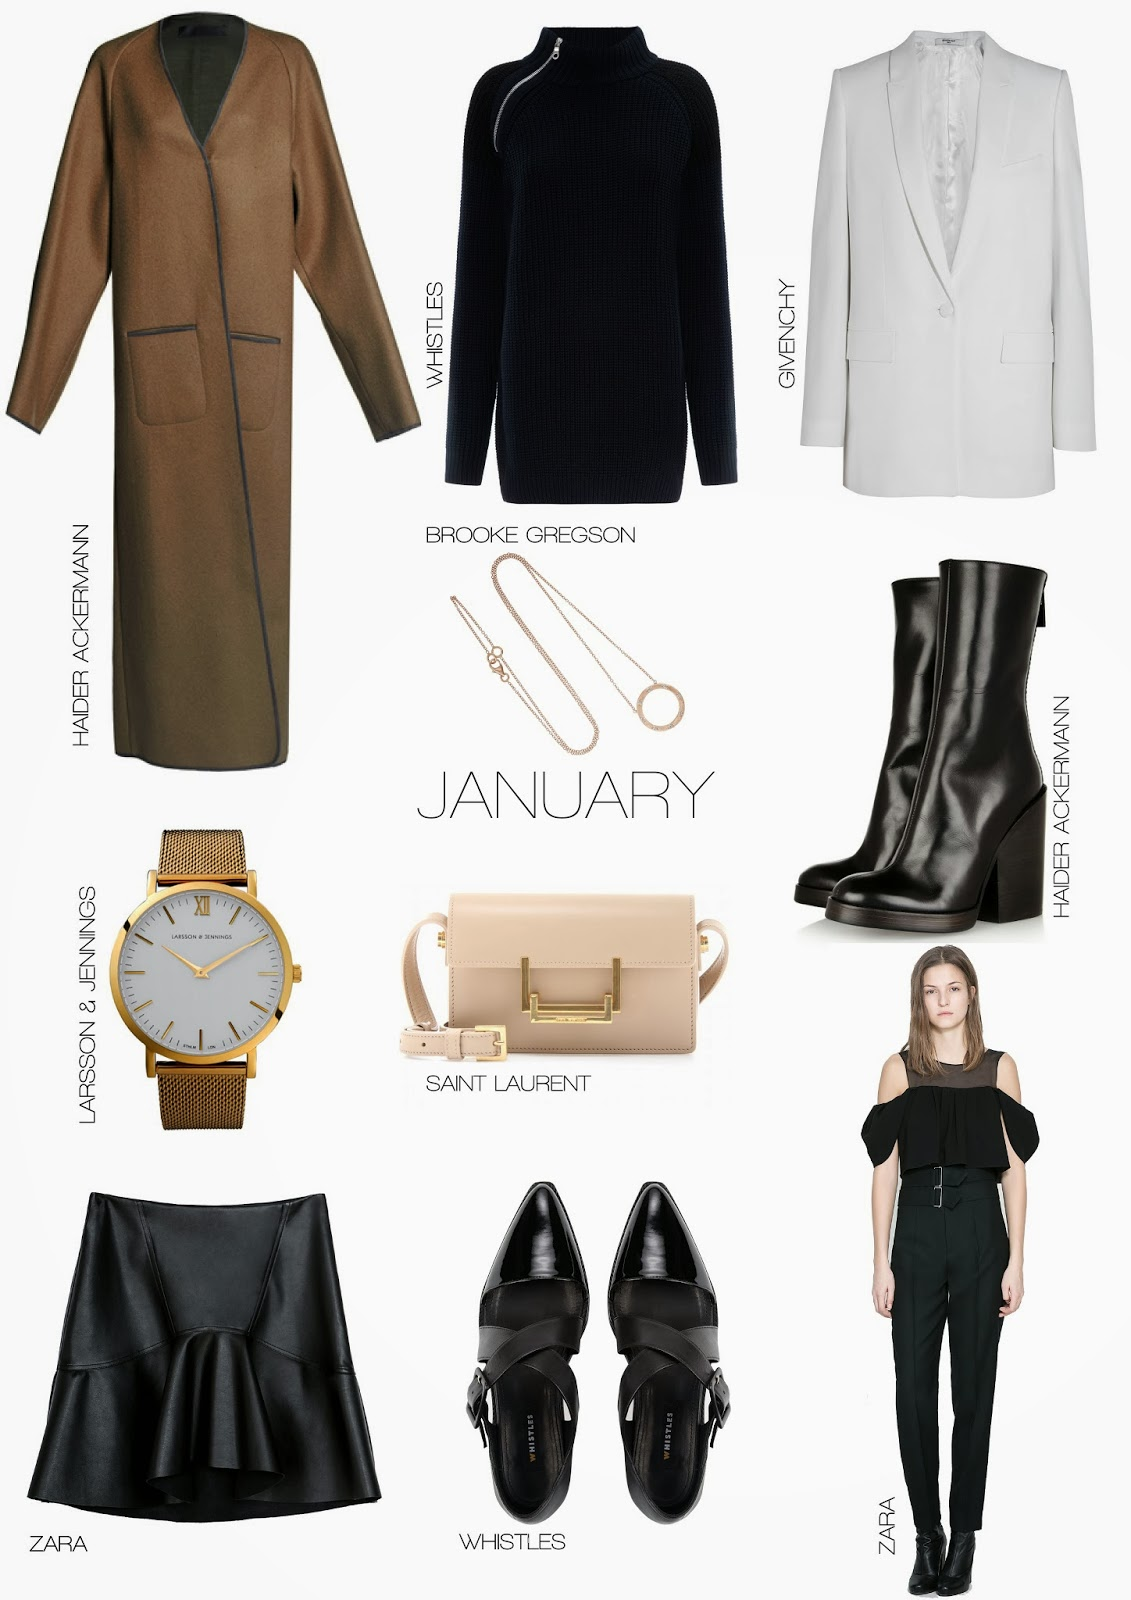 January 2014 Trend Report